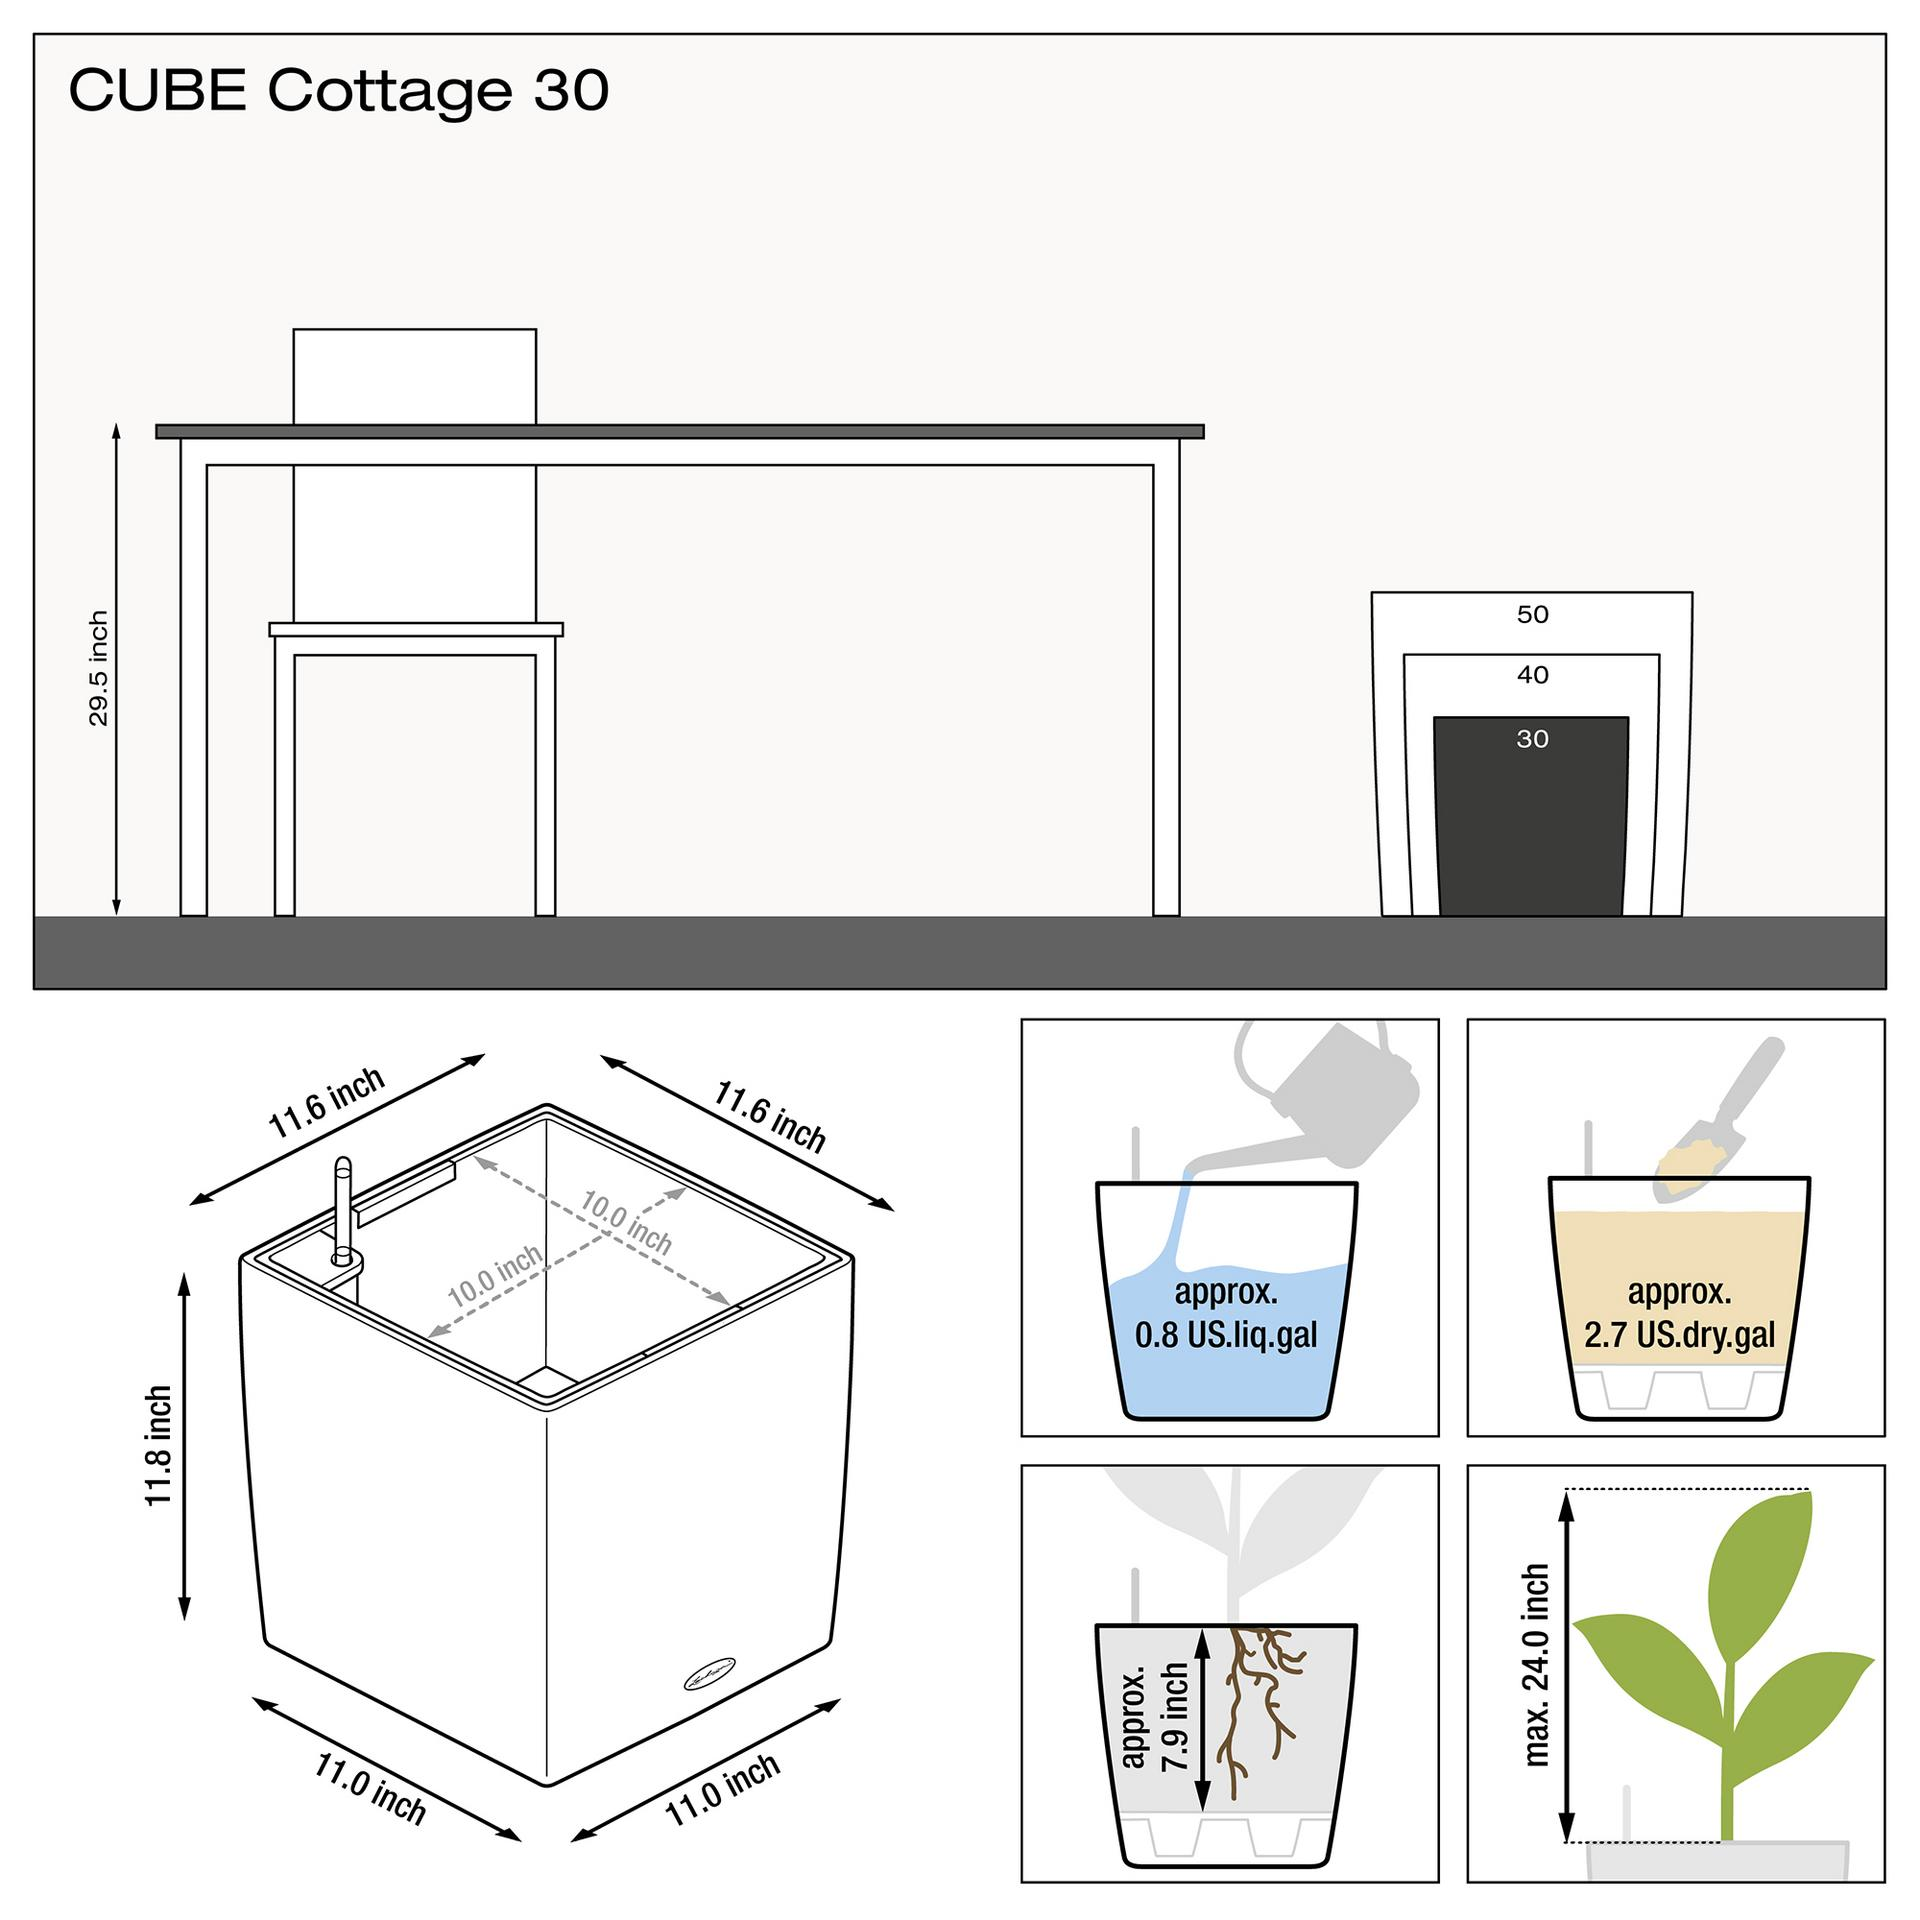 le_cube-cottage30_product_addi_nz_us